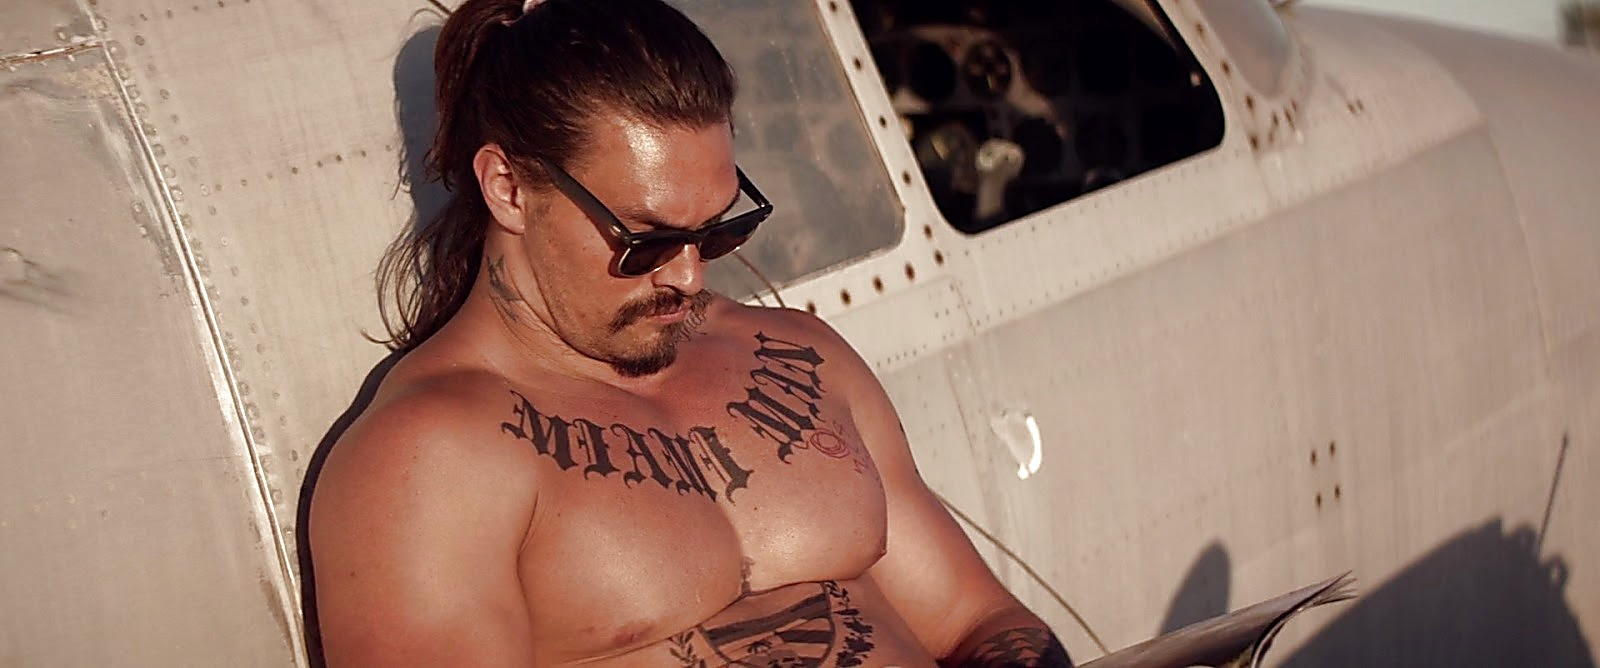 Jason Momoa The Bad Batch 2017 06 23 6jpg